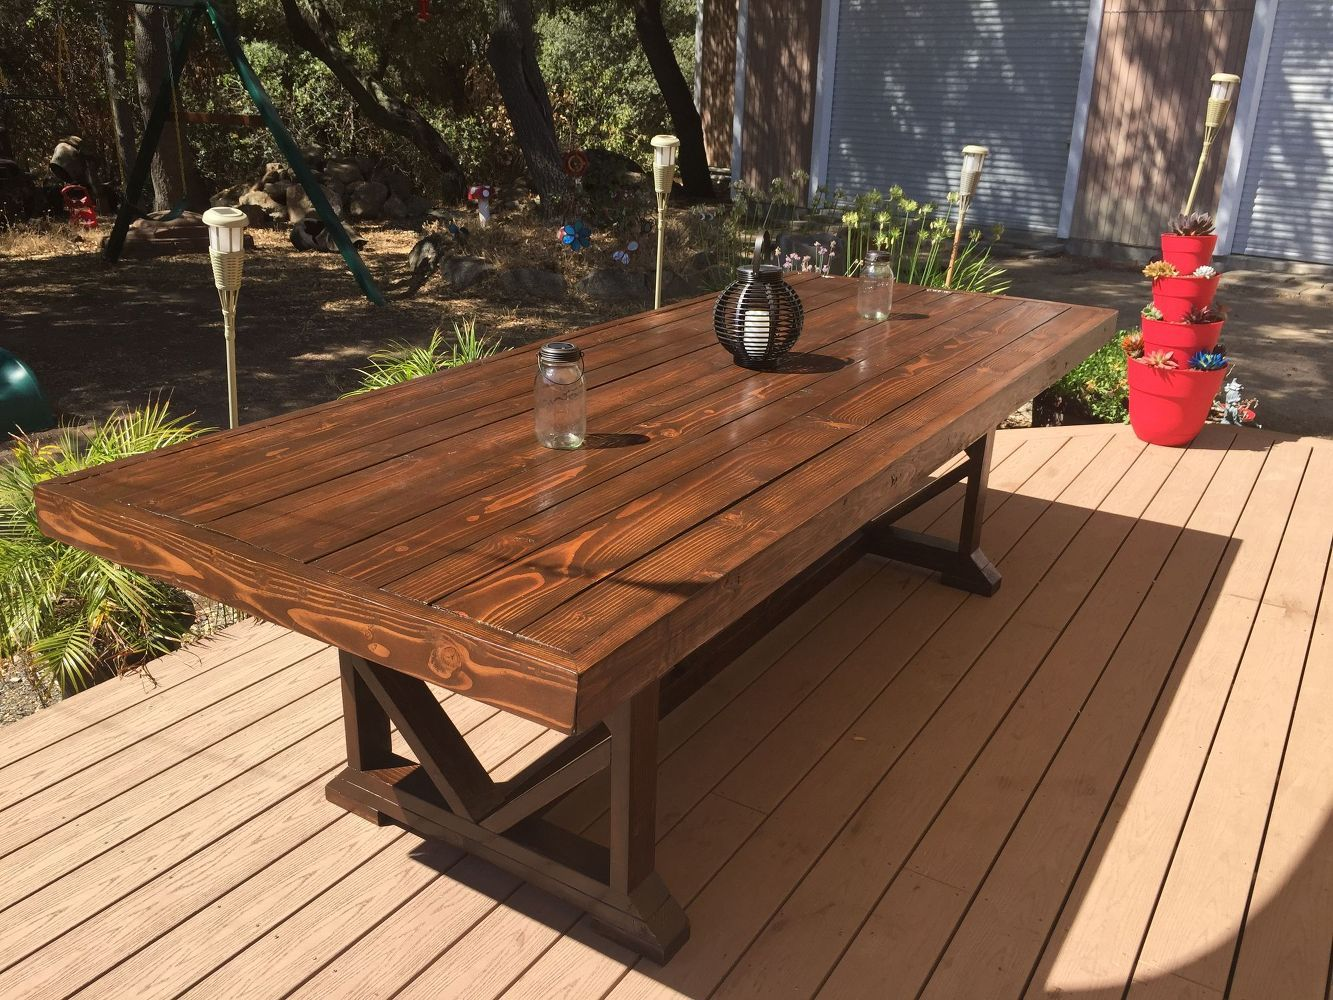 Diy large outdoor dining table seats 10 12 diy outdoor furniture outdoor living woodworking projects